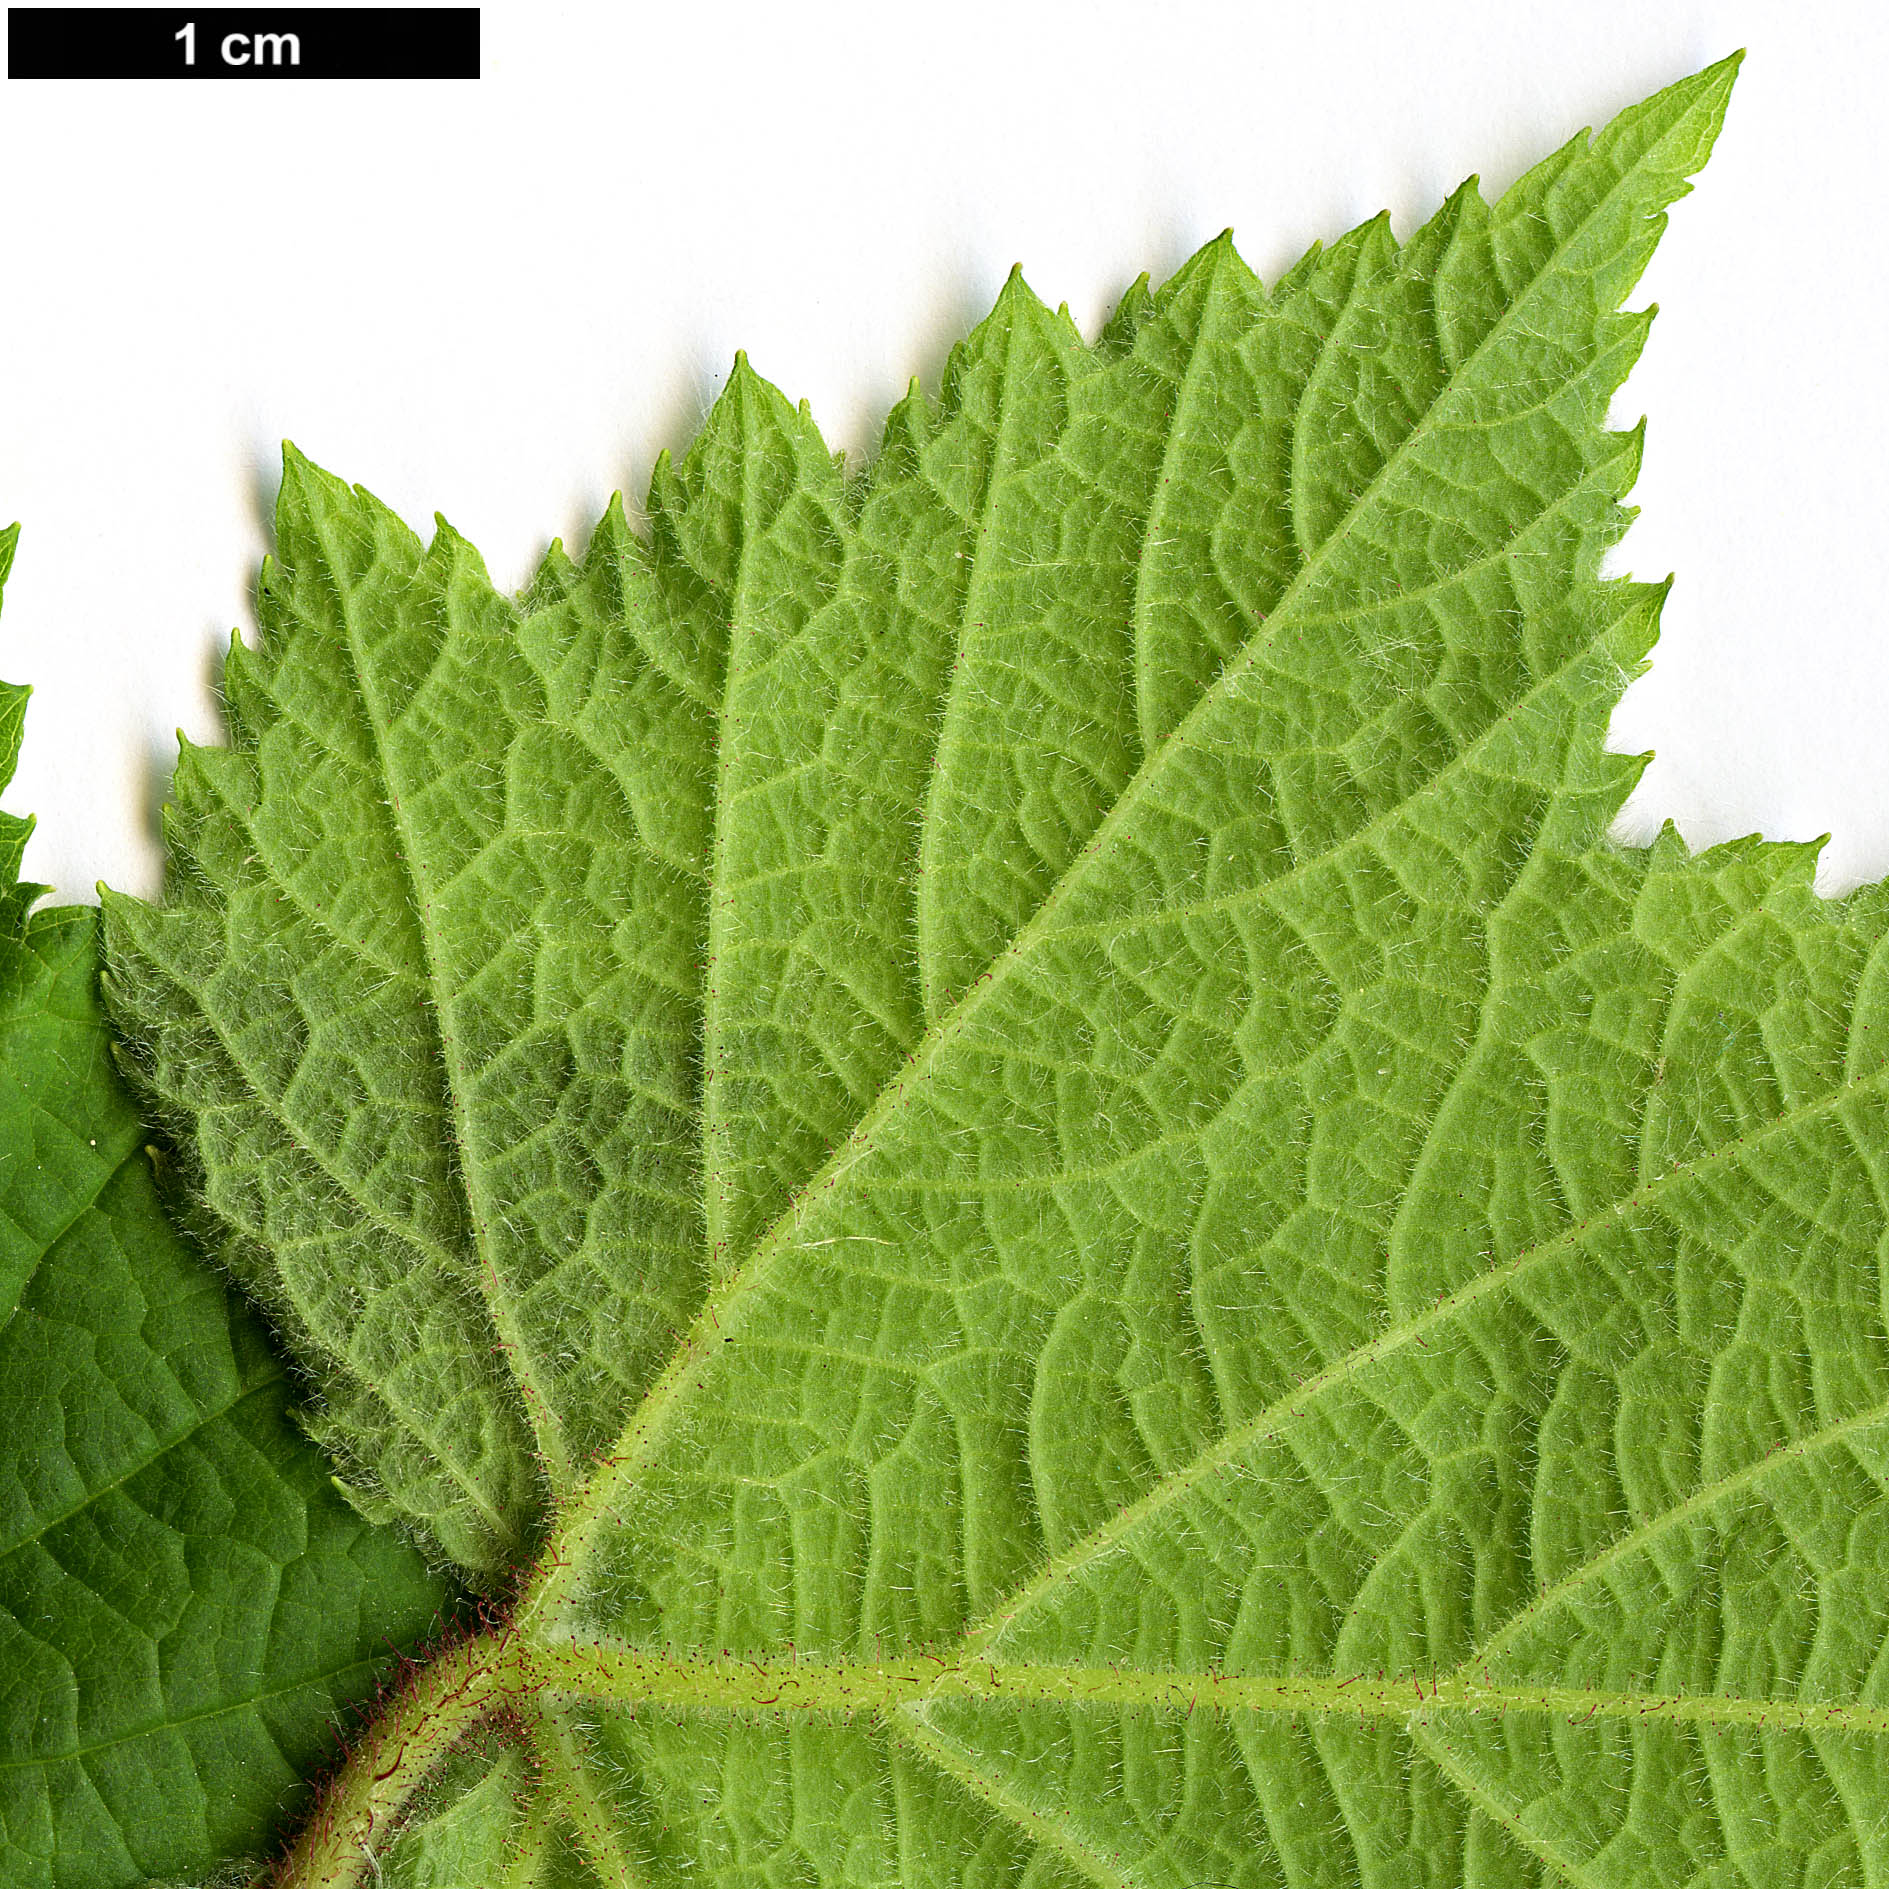 High resolution image: Family: Rosaceae - Genus: Rubus - Taxon: odoratus